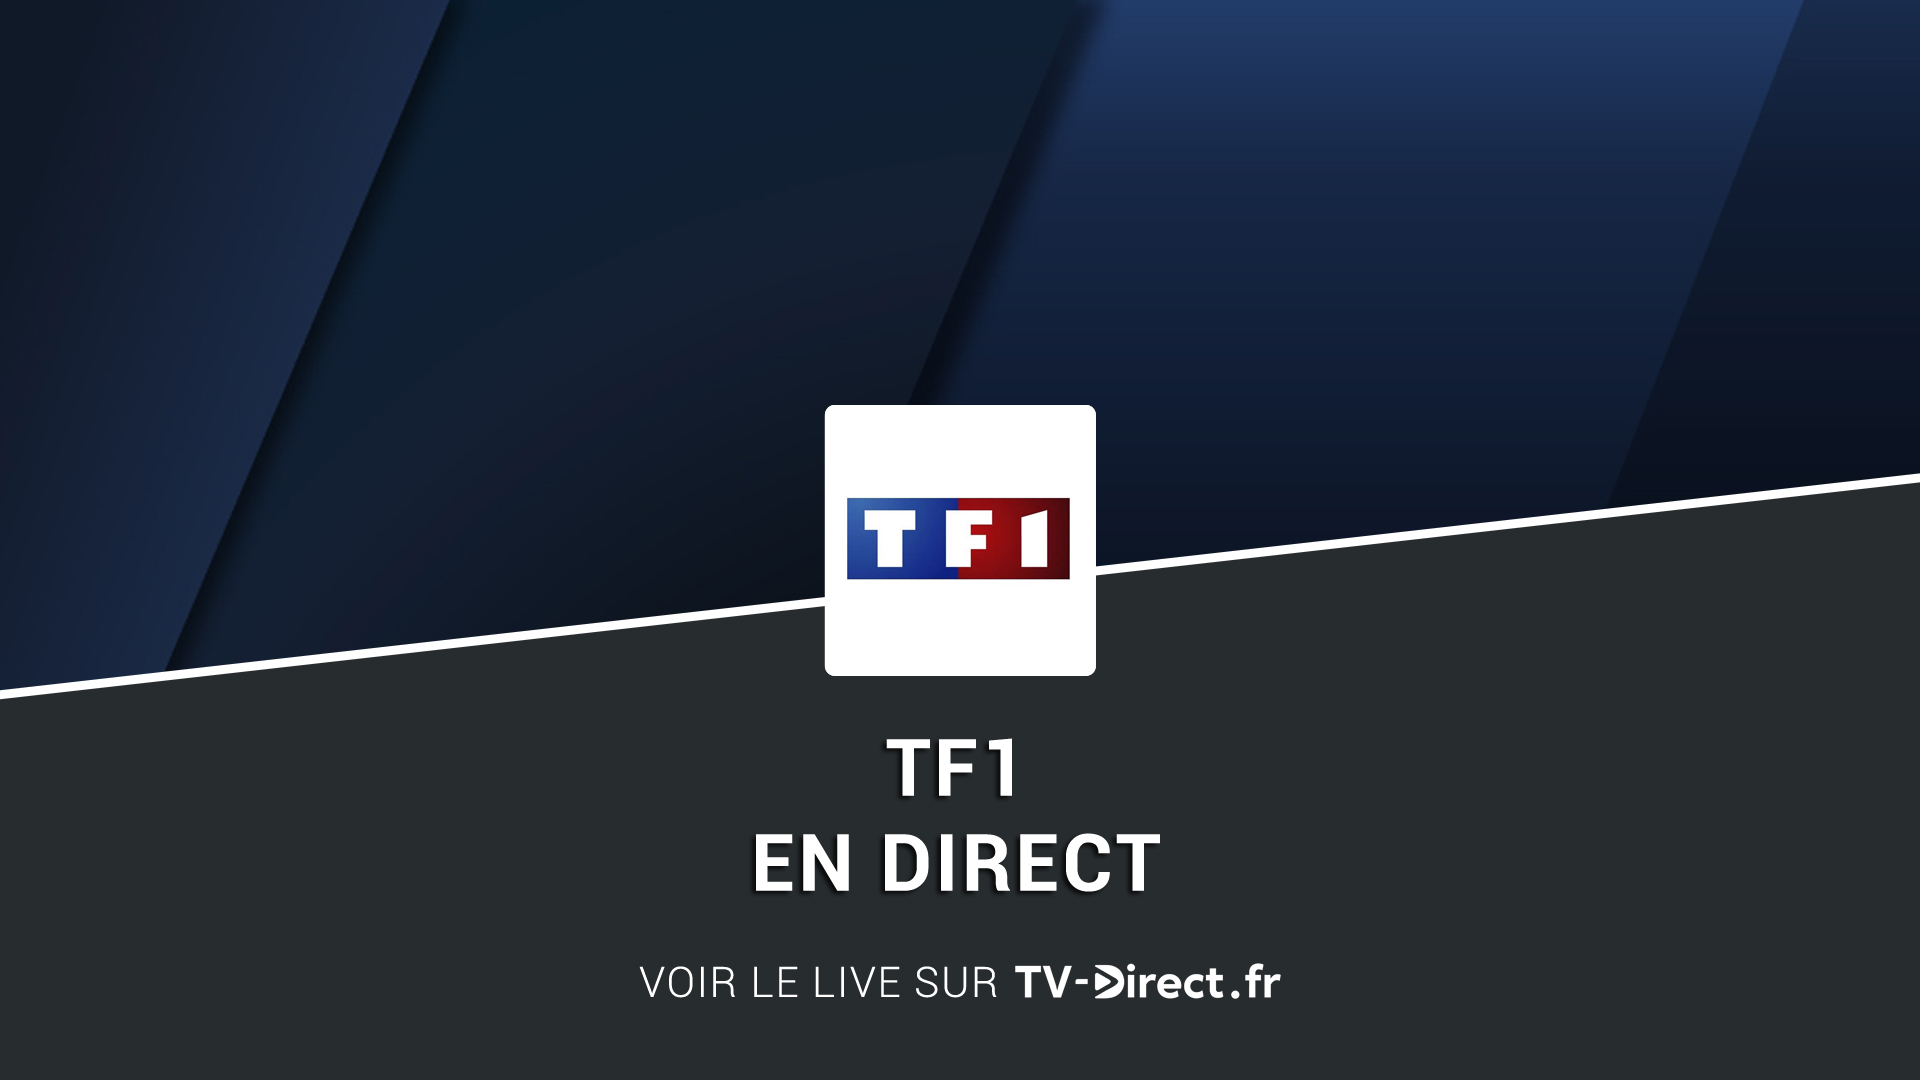 tf1 direct regarder tf1 en direct live sur internet. Black Bedroom Furniture Sets. Home Design Ideas